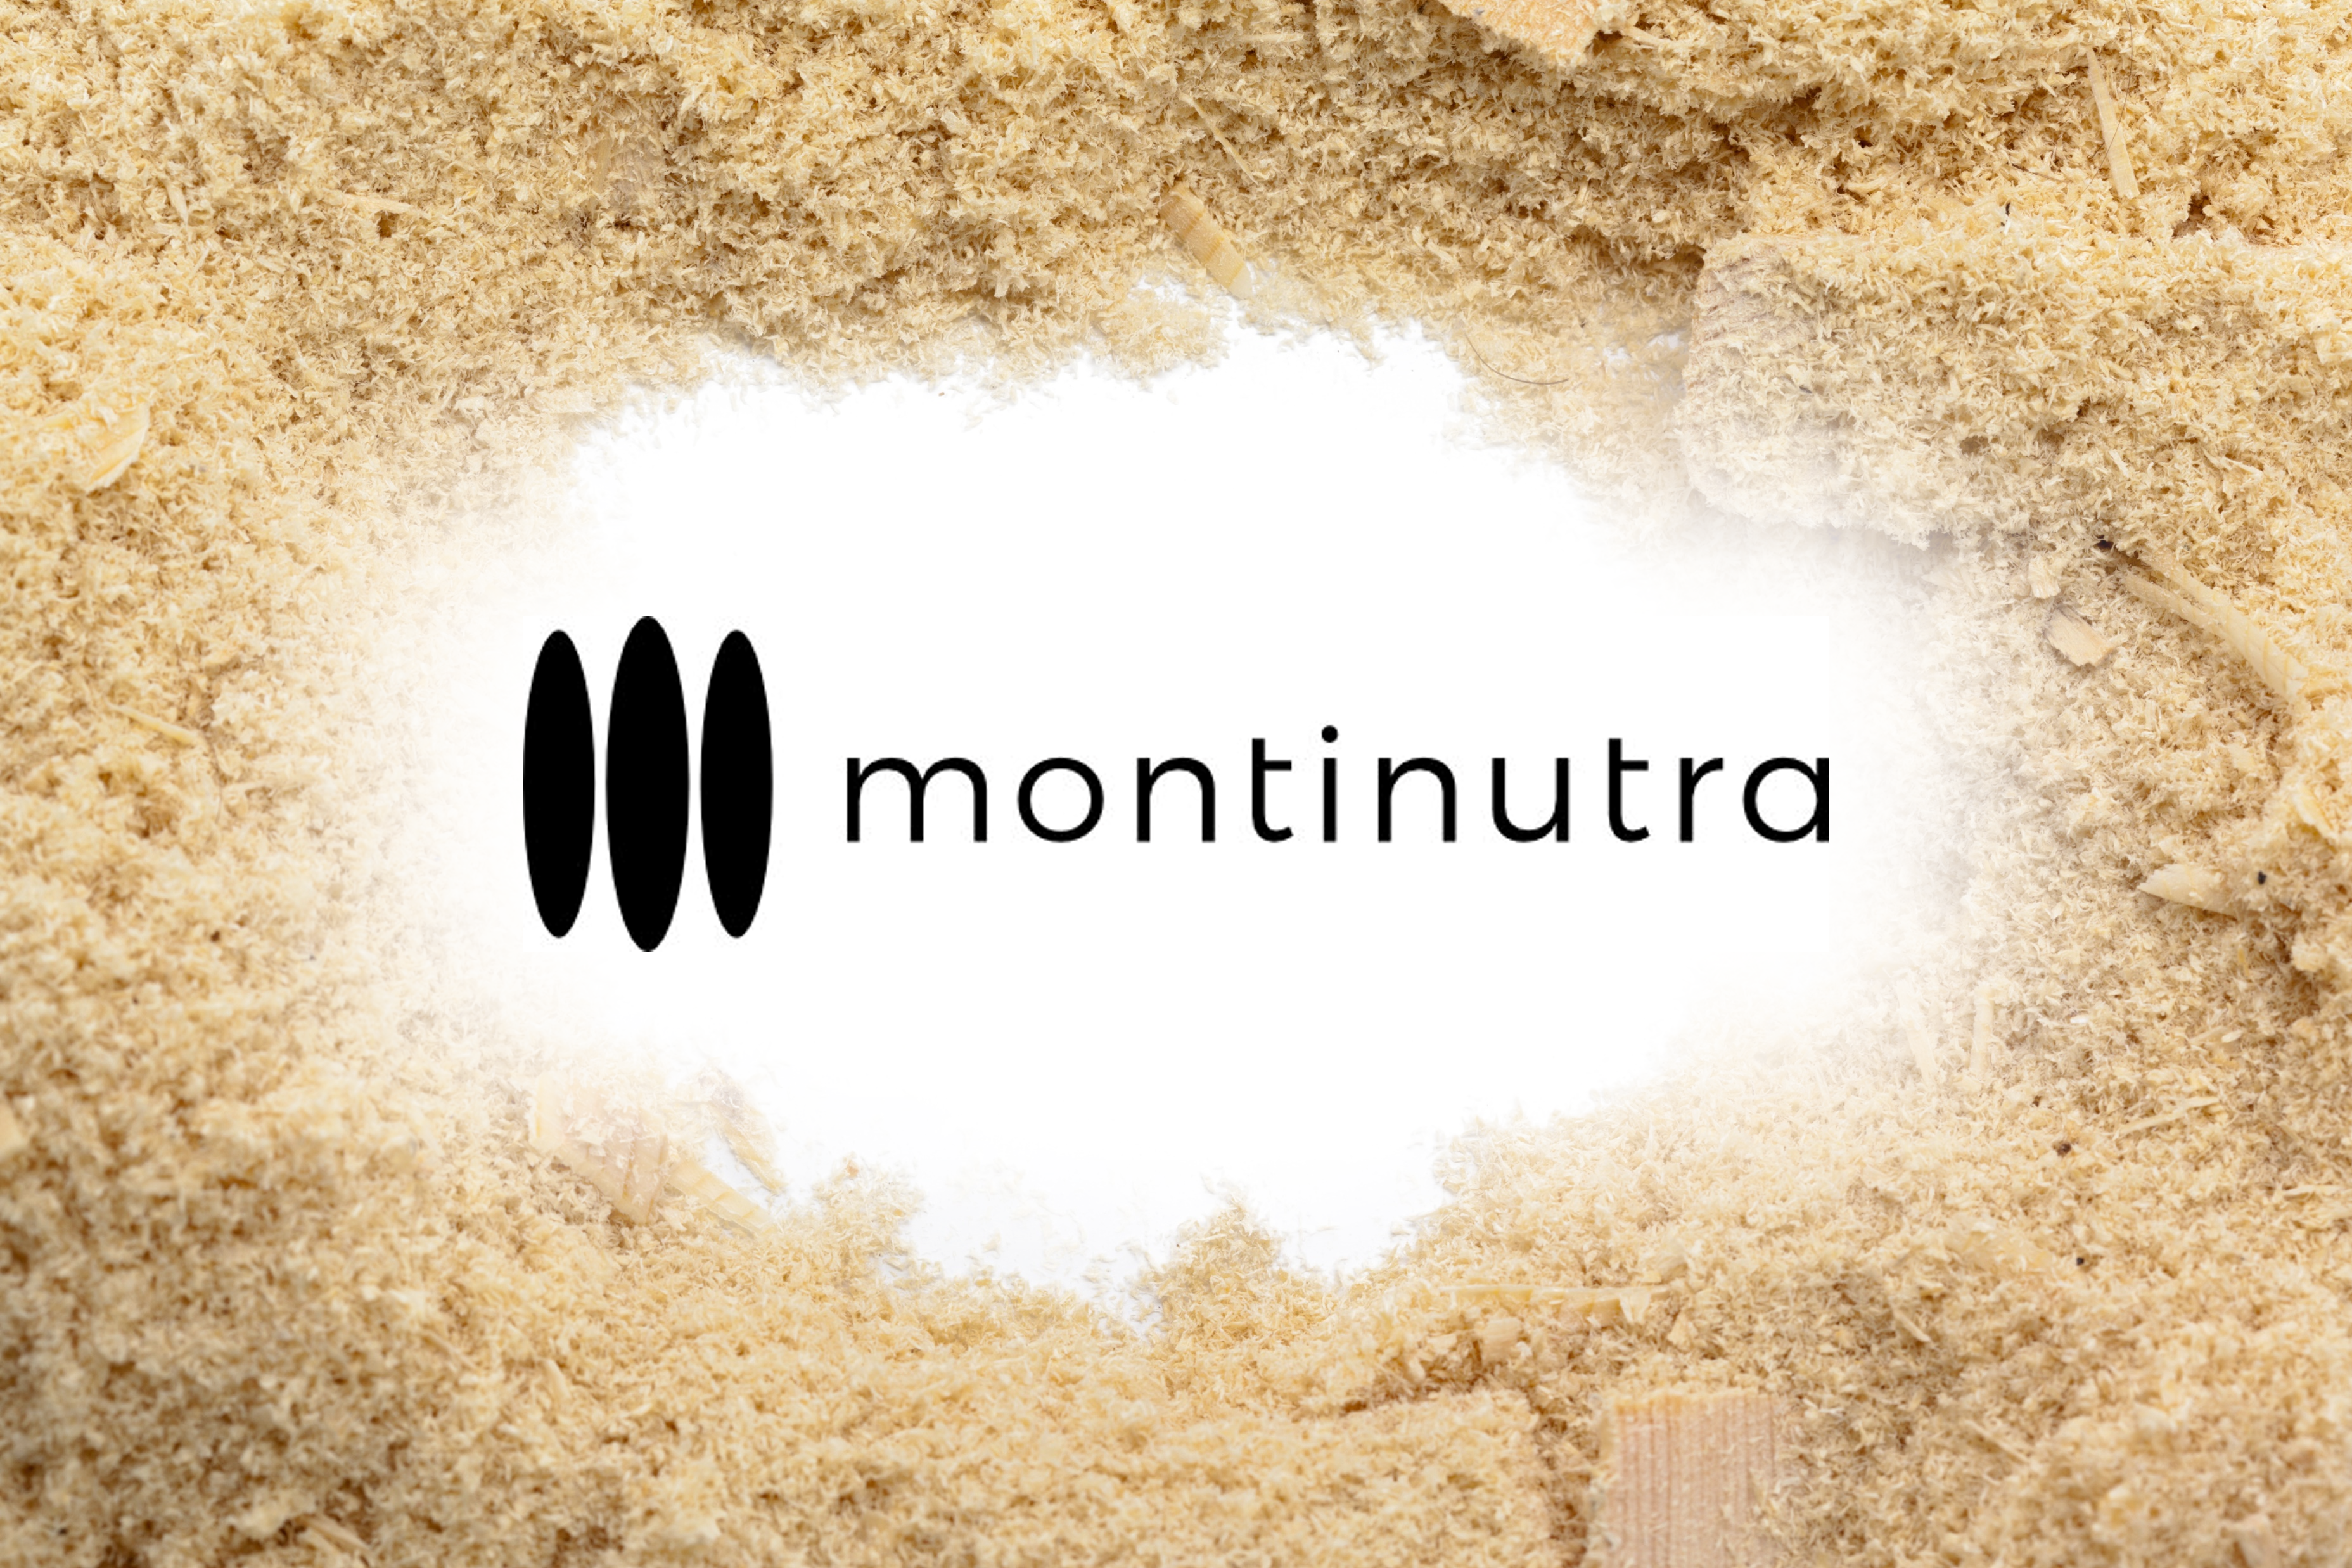 Montinutra produces high-value bioactive products from side streams of the forest industry